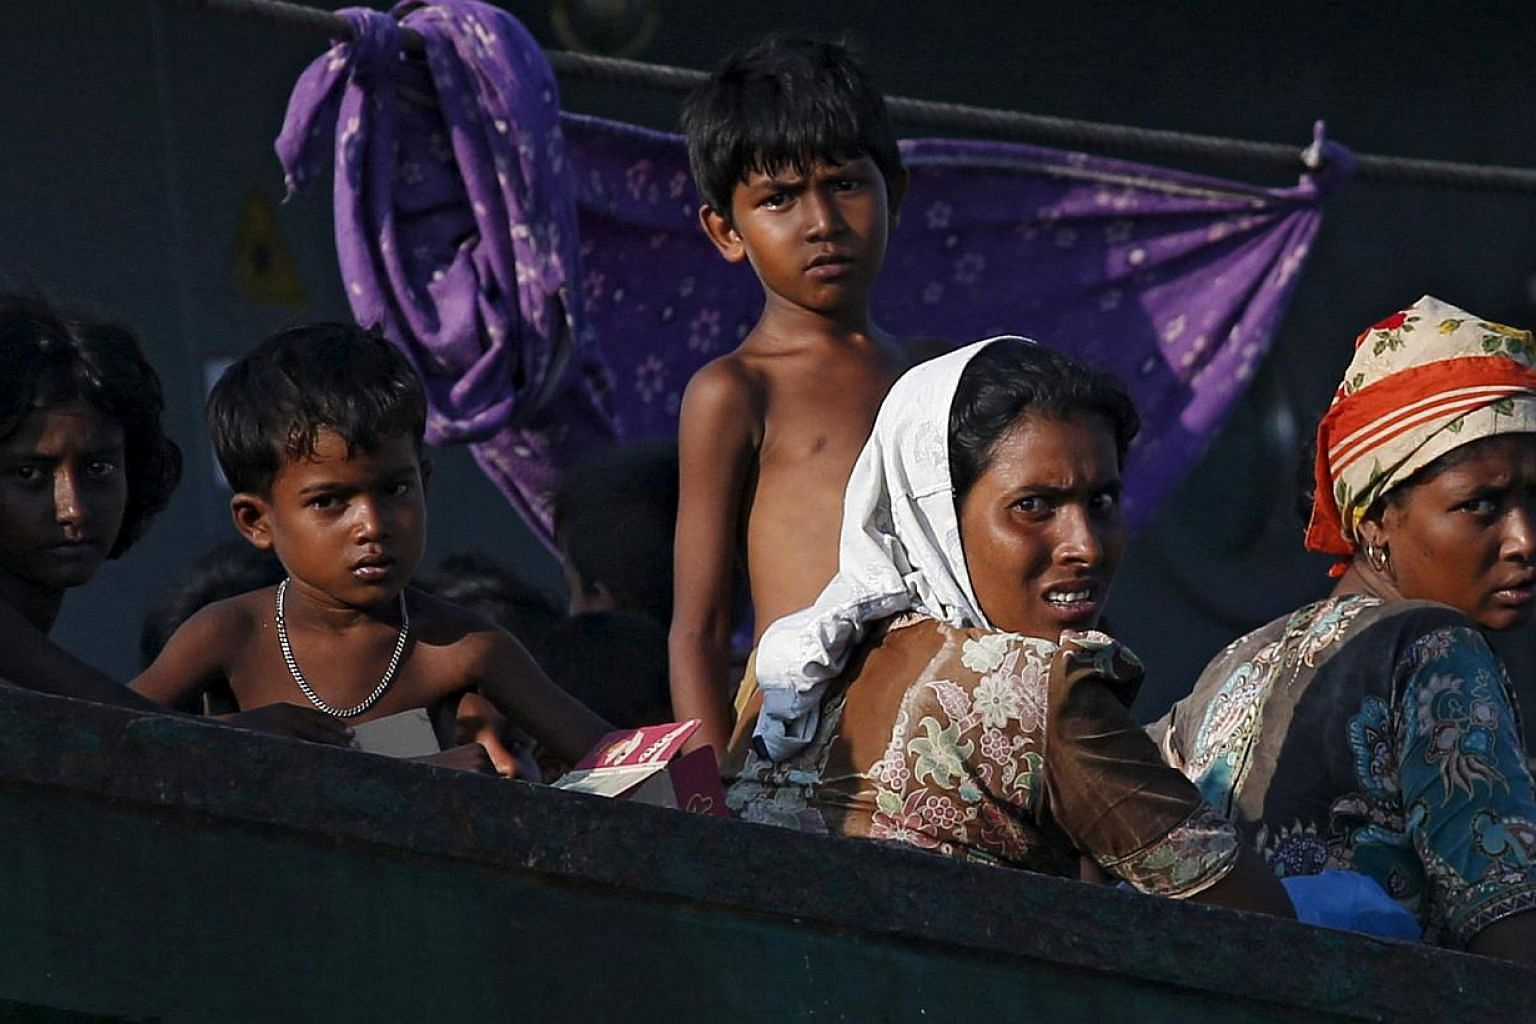 """Migrants looking on while on board a boat tethered to a Thai navy vessel, in waters near Koh Lipe island, on May 16, 2015.Muslim boatpeople fleeing dire conditions in Myanmar are entitled to """"human rights"""", a spokesman for Aung San Suu Kyi's op"""